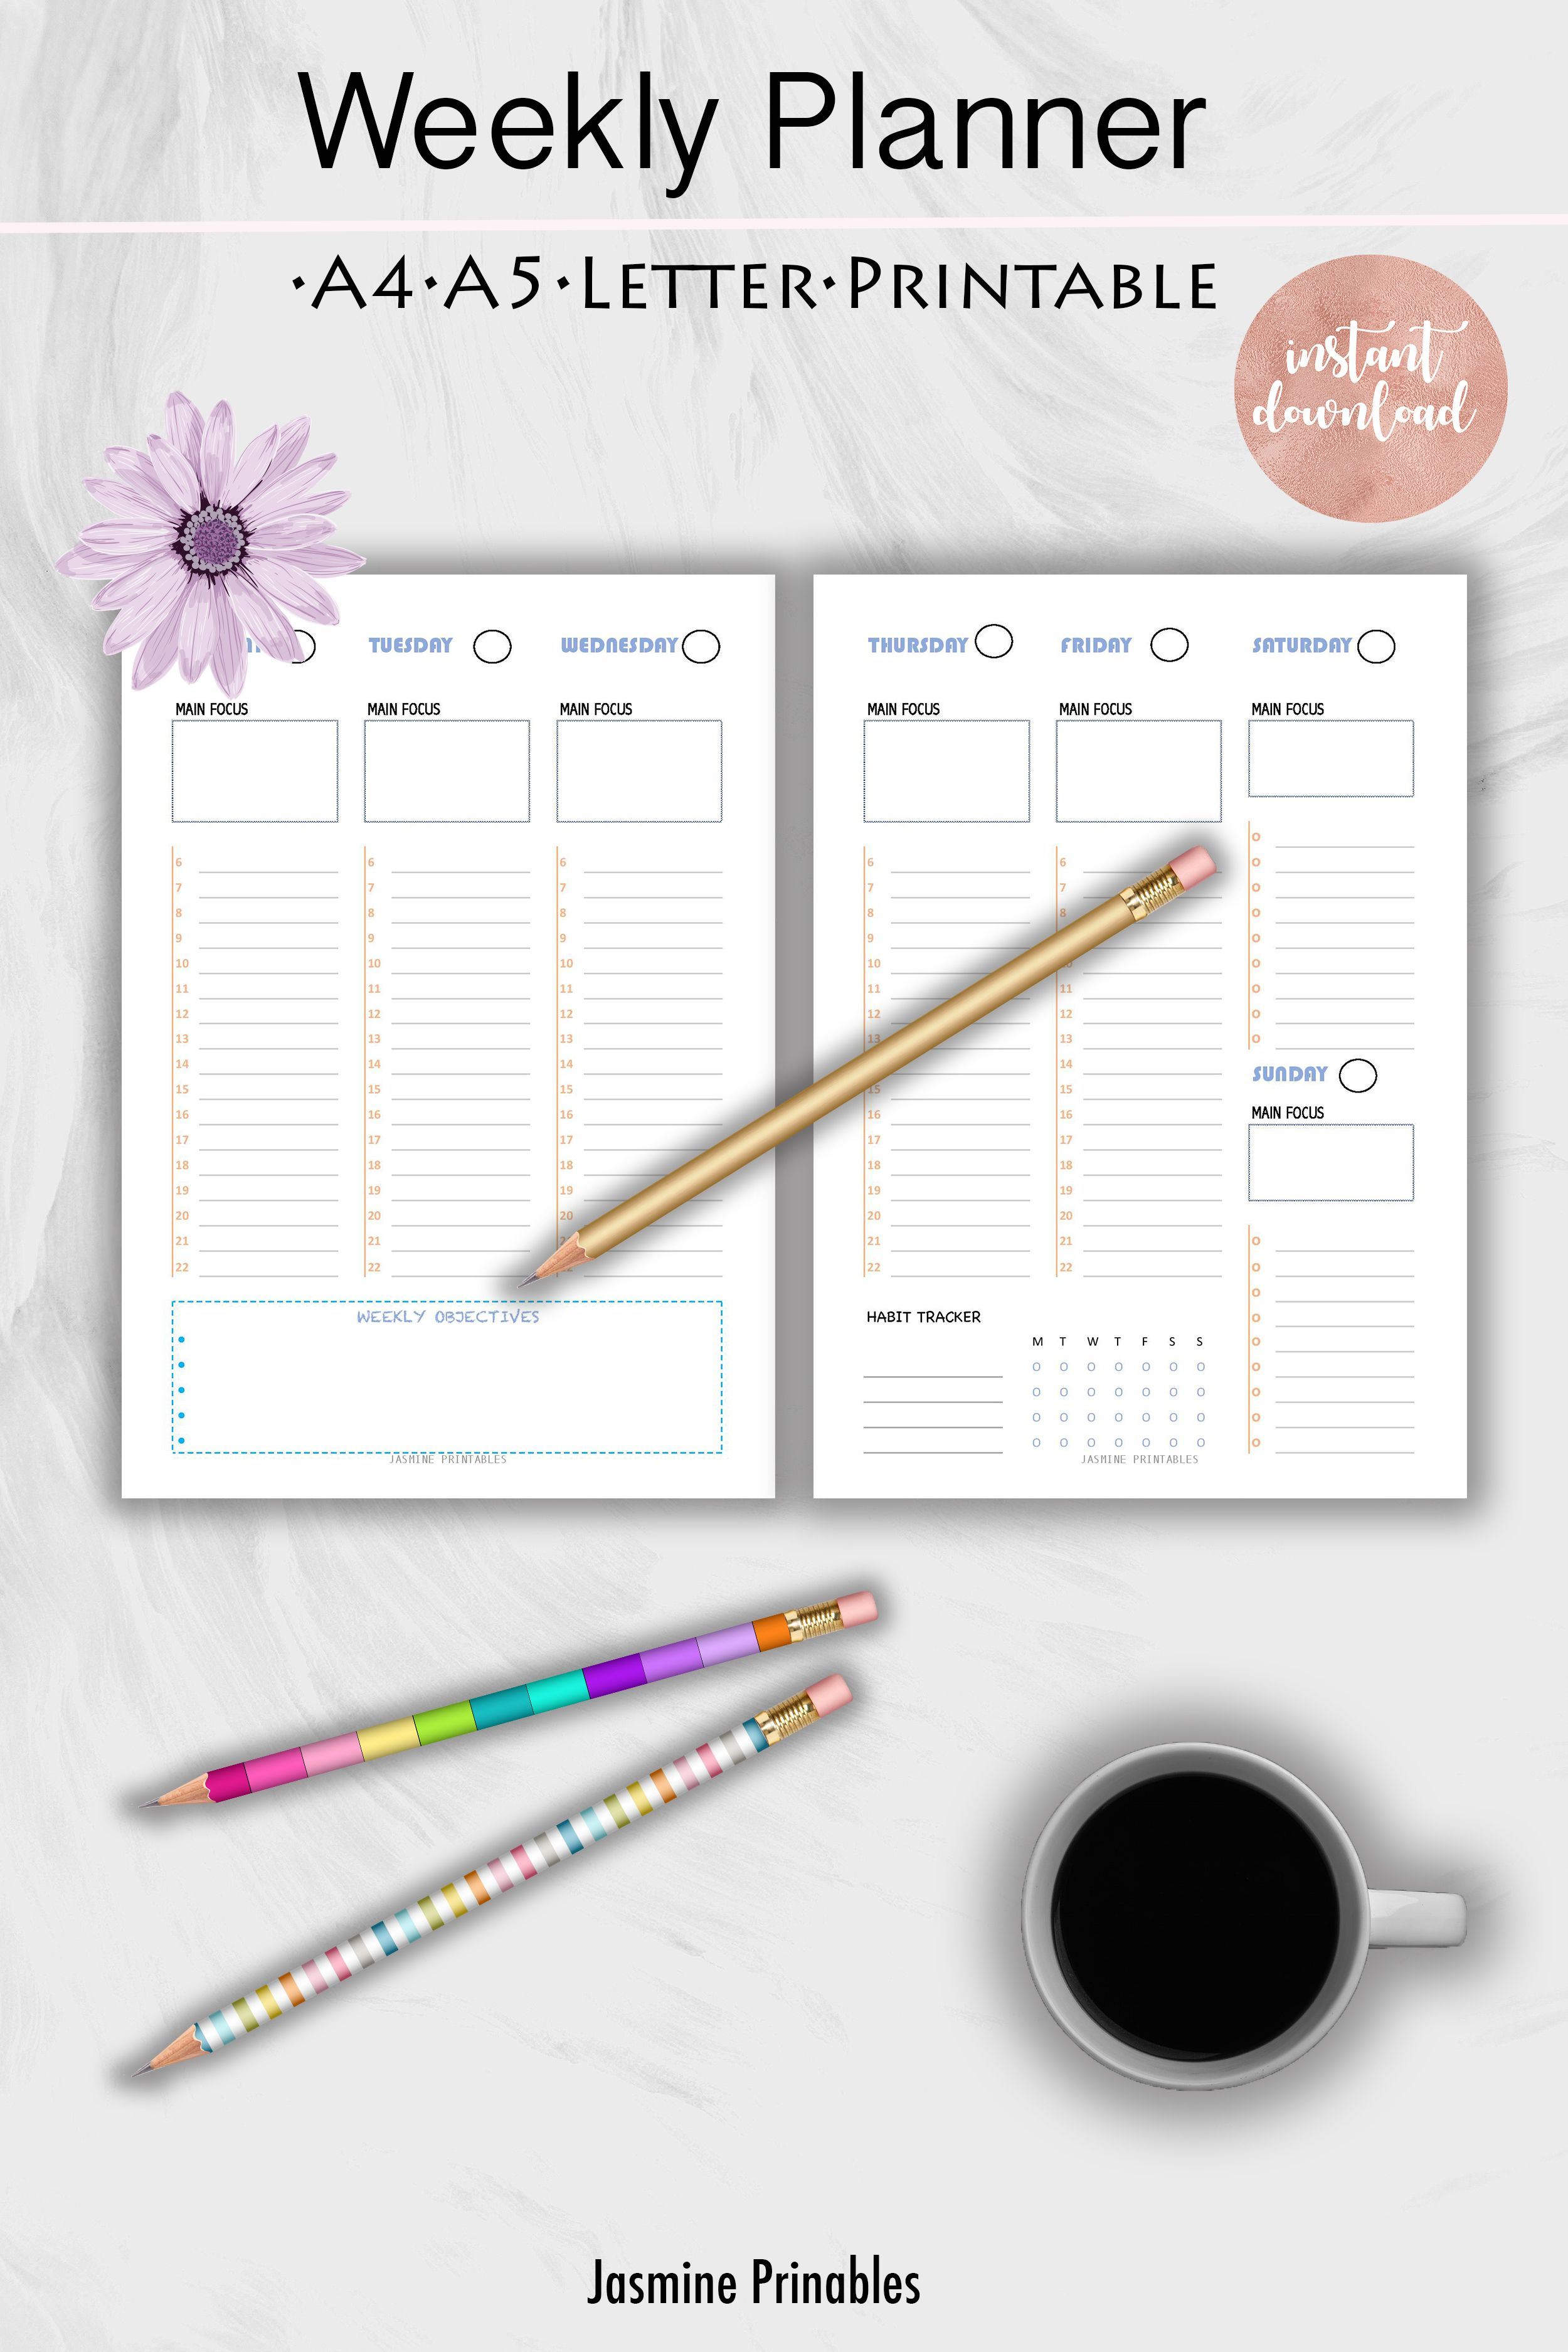 Weekly planner; hourly planner, two page layout